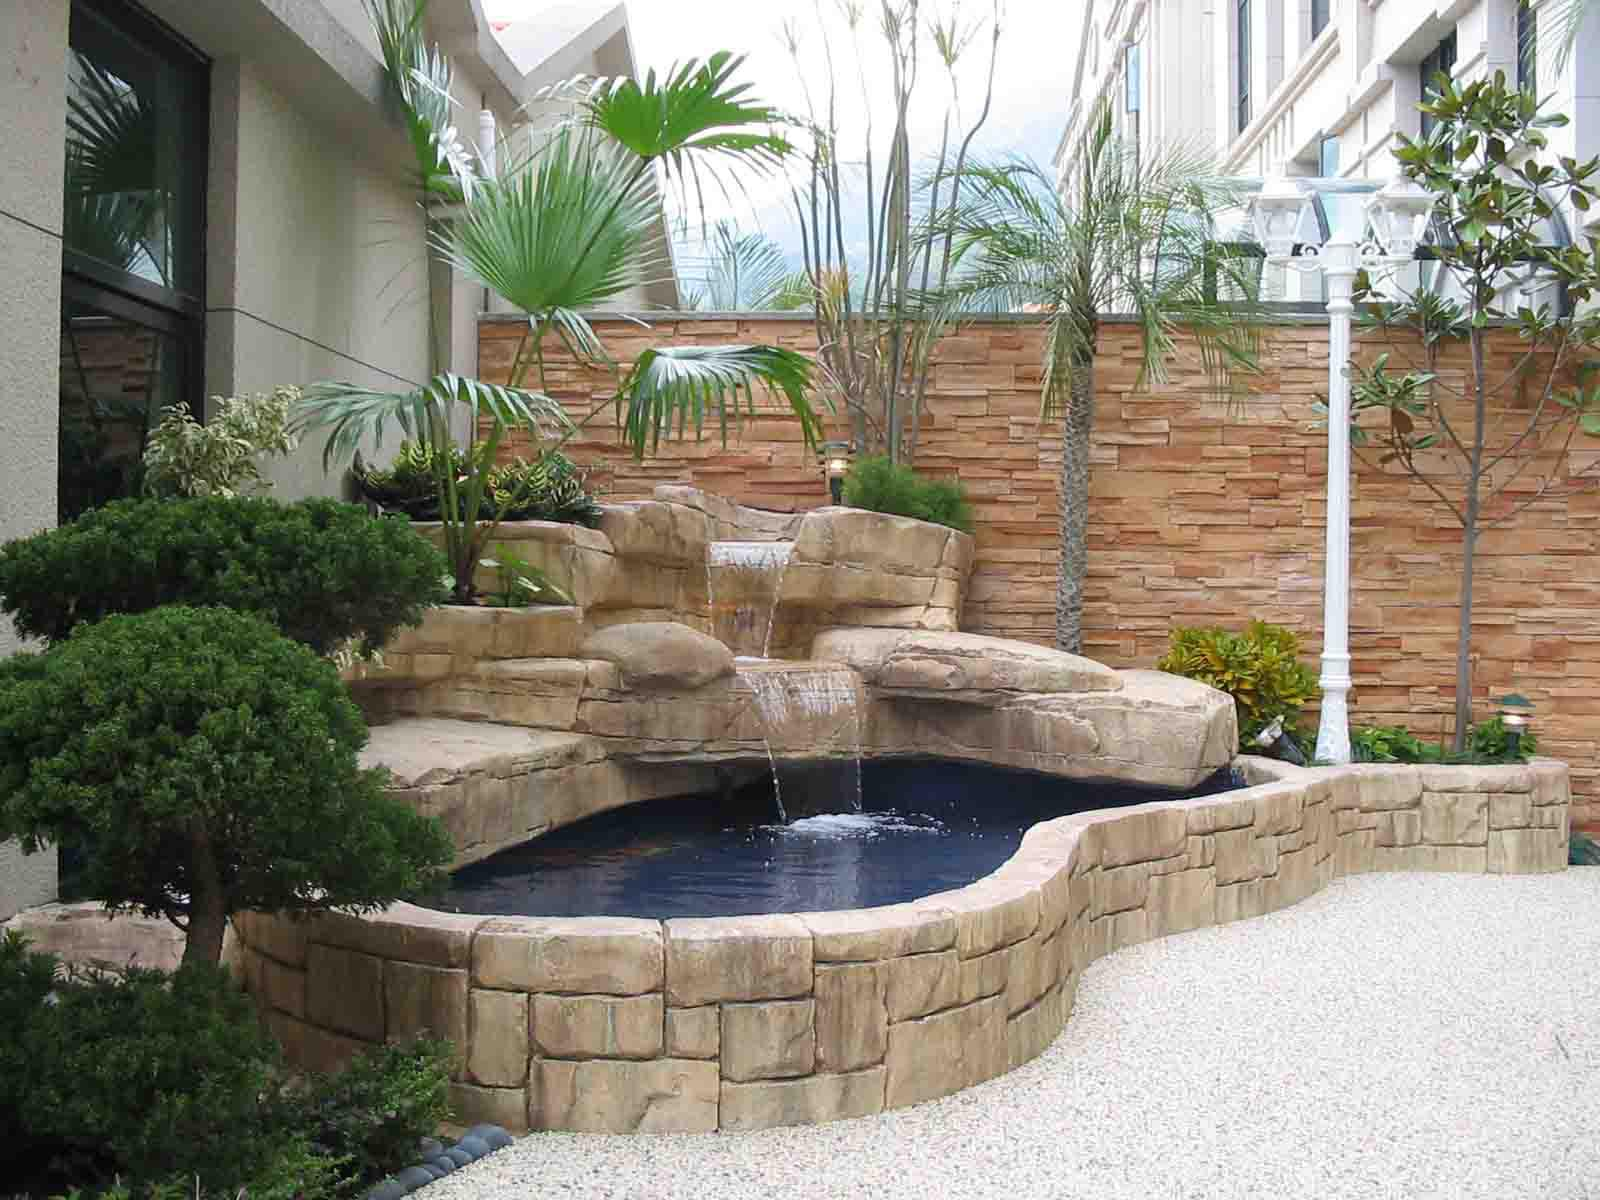 Fish pond garden design backyard design ideas for Outdoor fish ponds designs